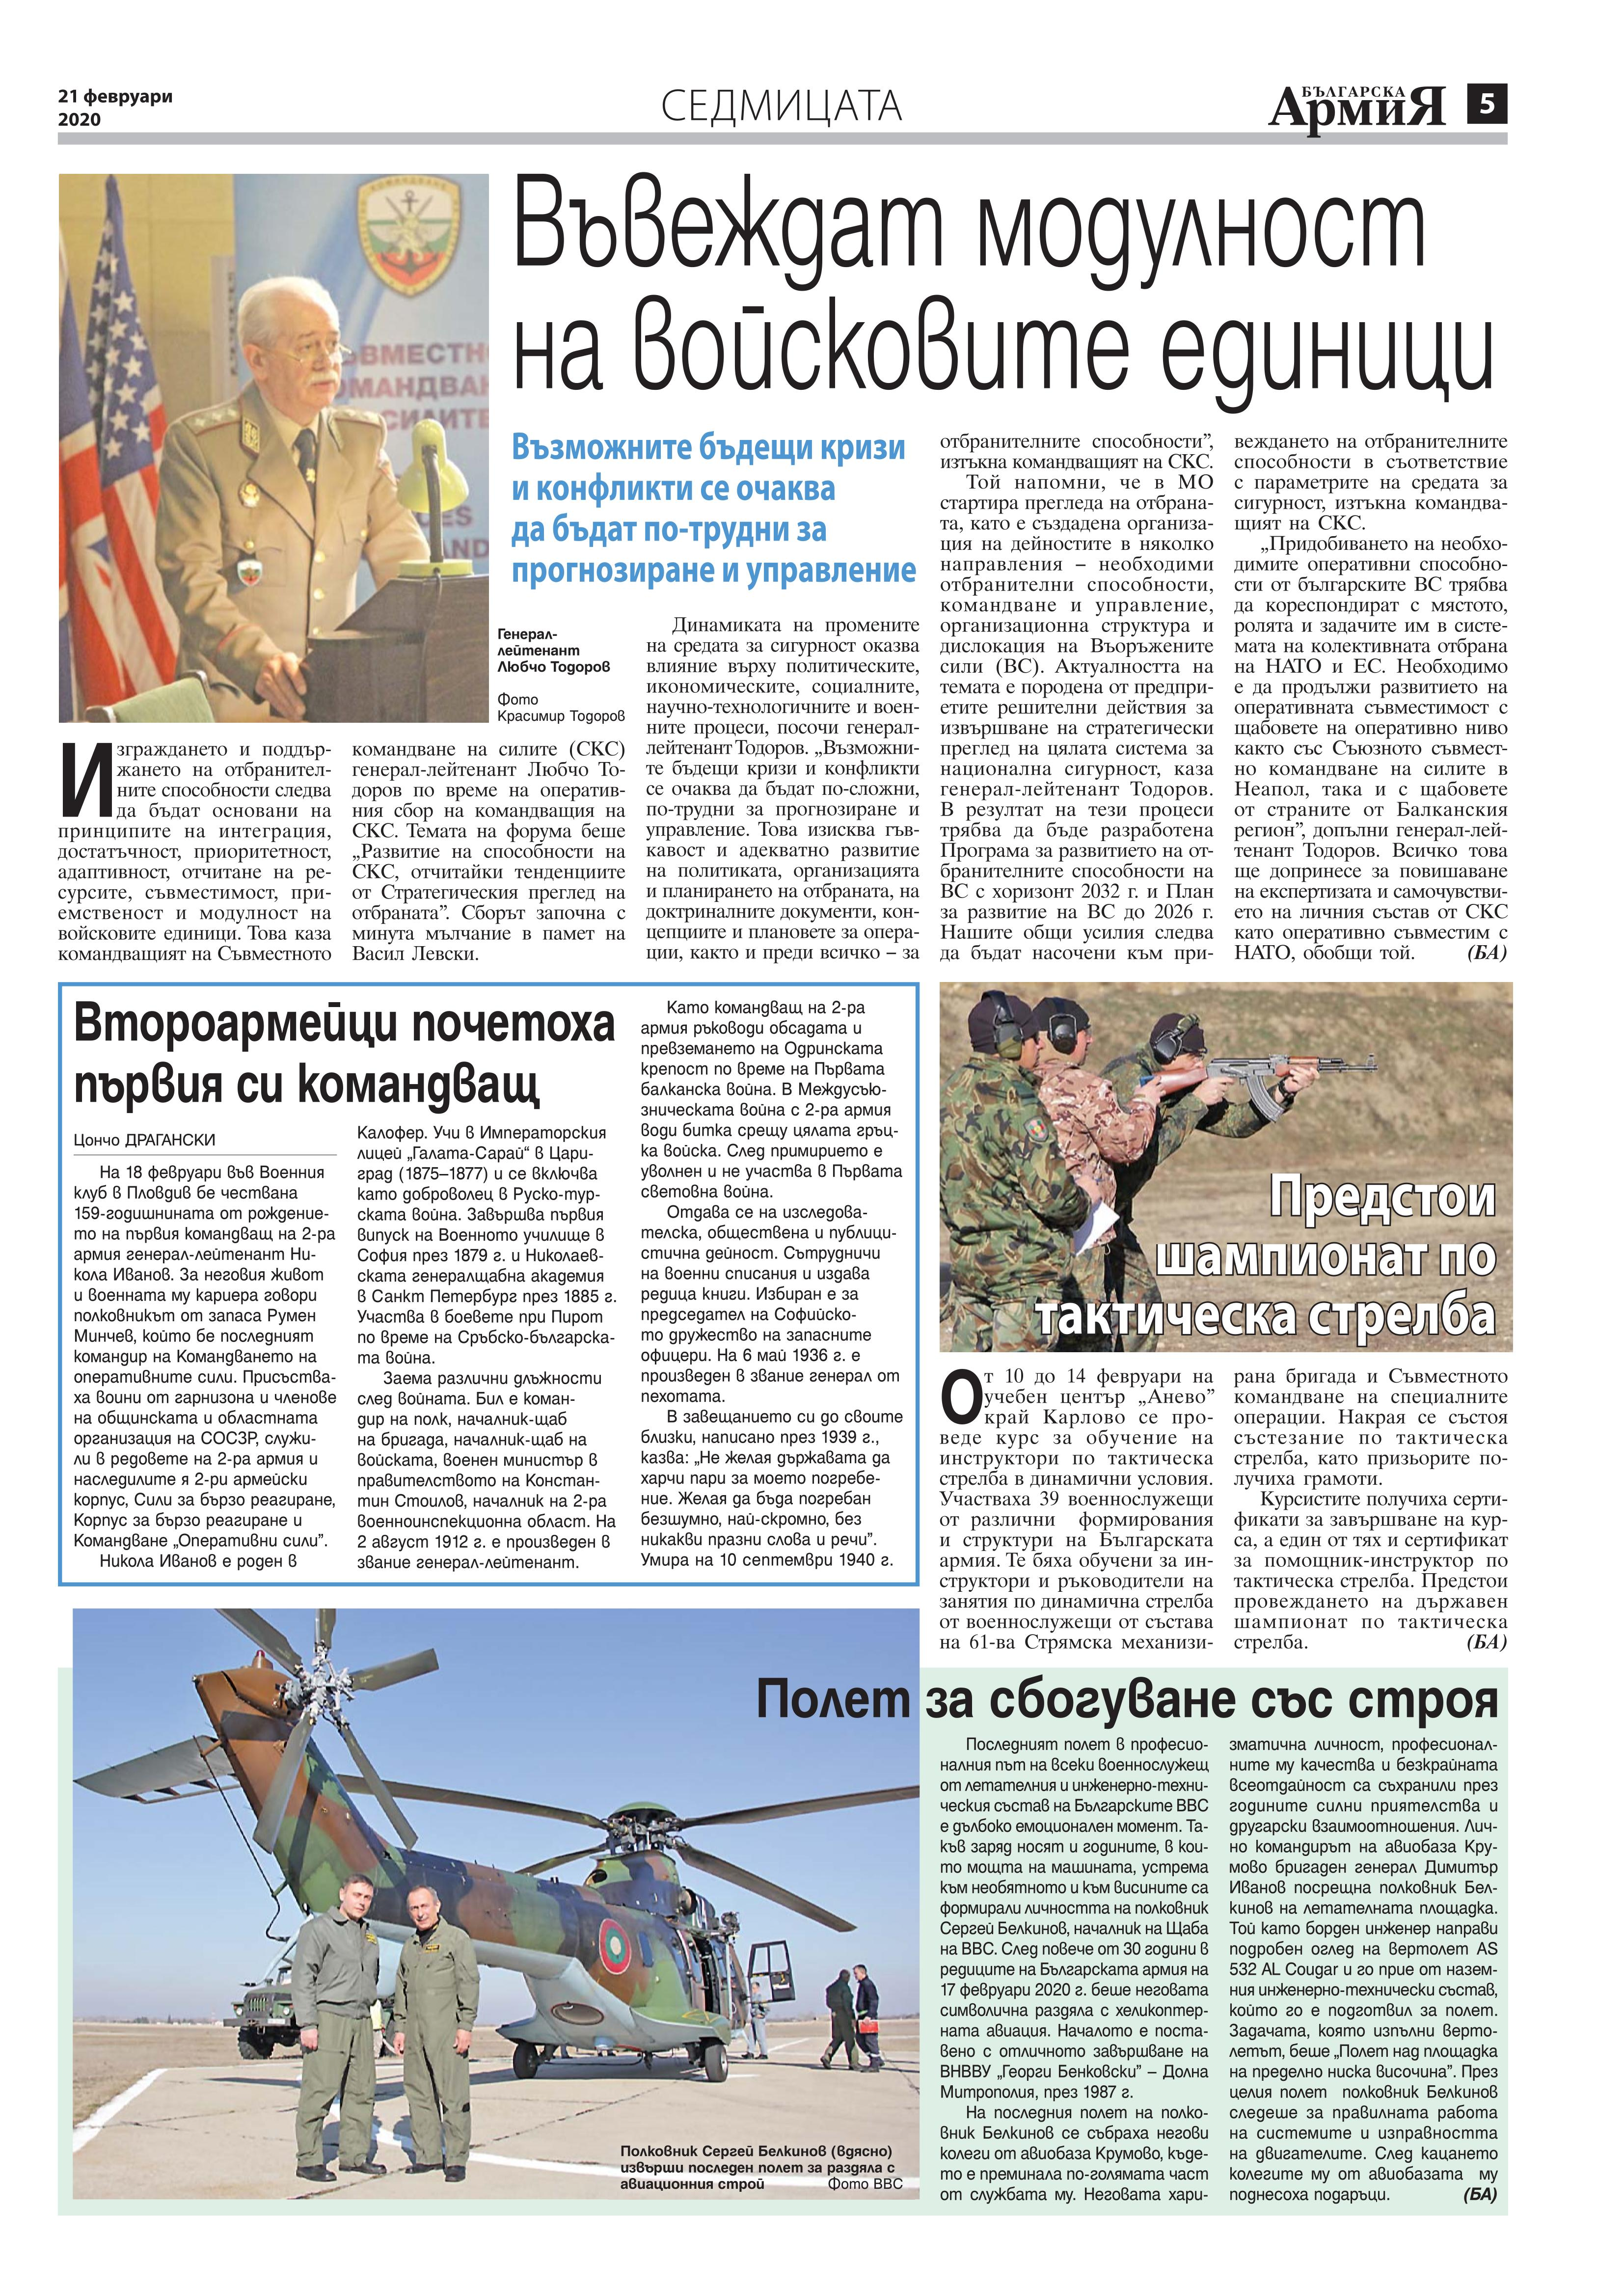 https://armymedia.bg/wp-content/uploads/2015/06/05.page1_-123.jpg